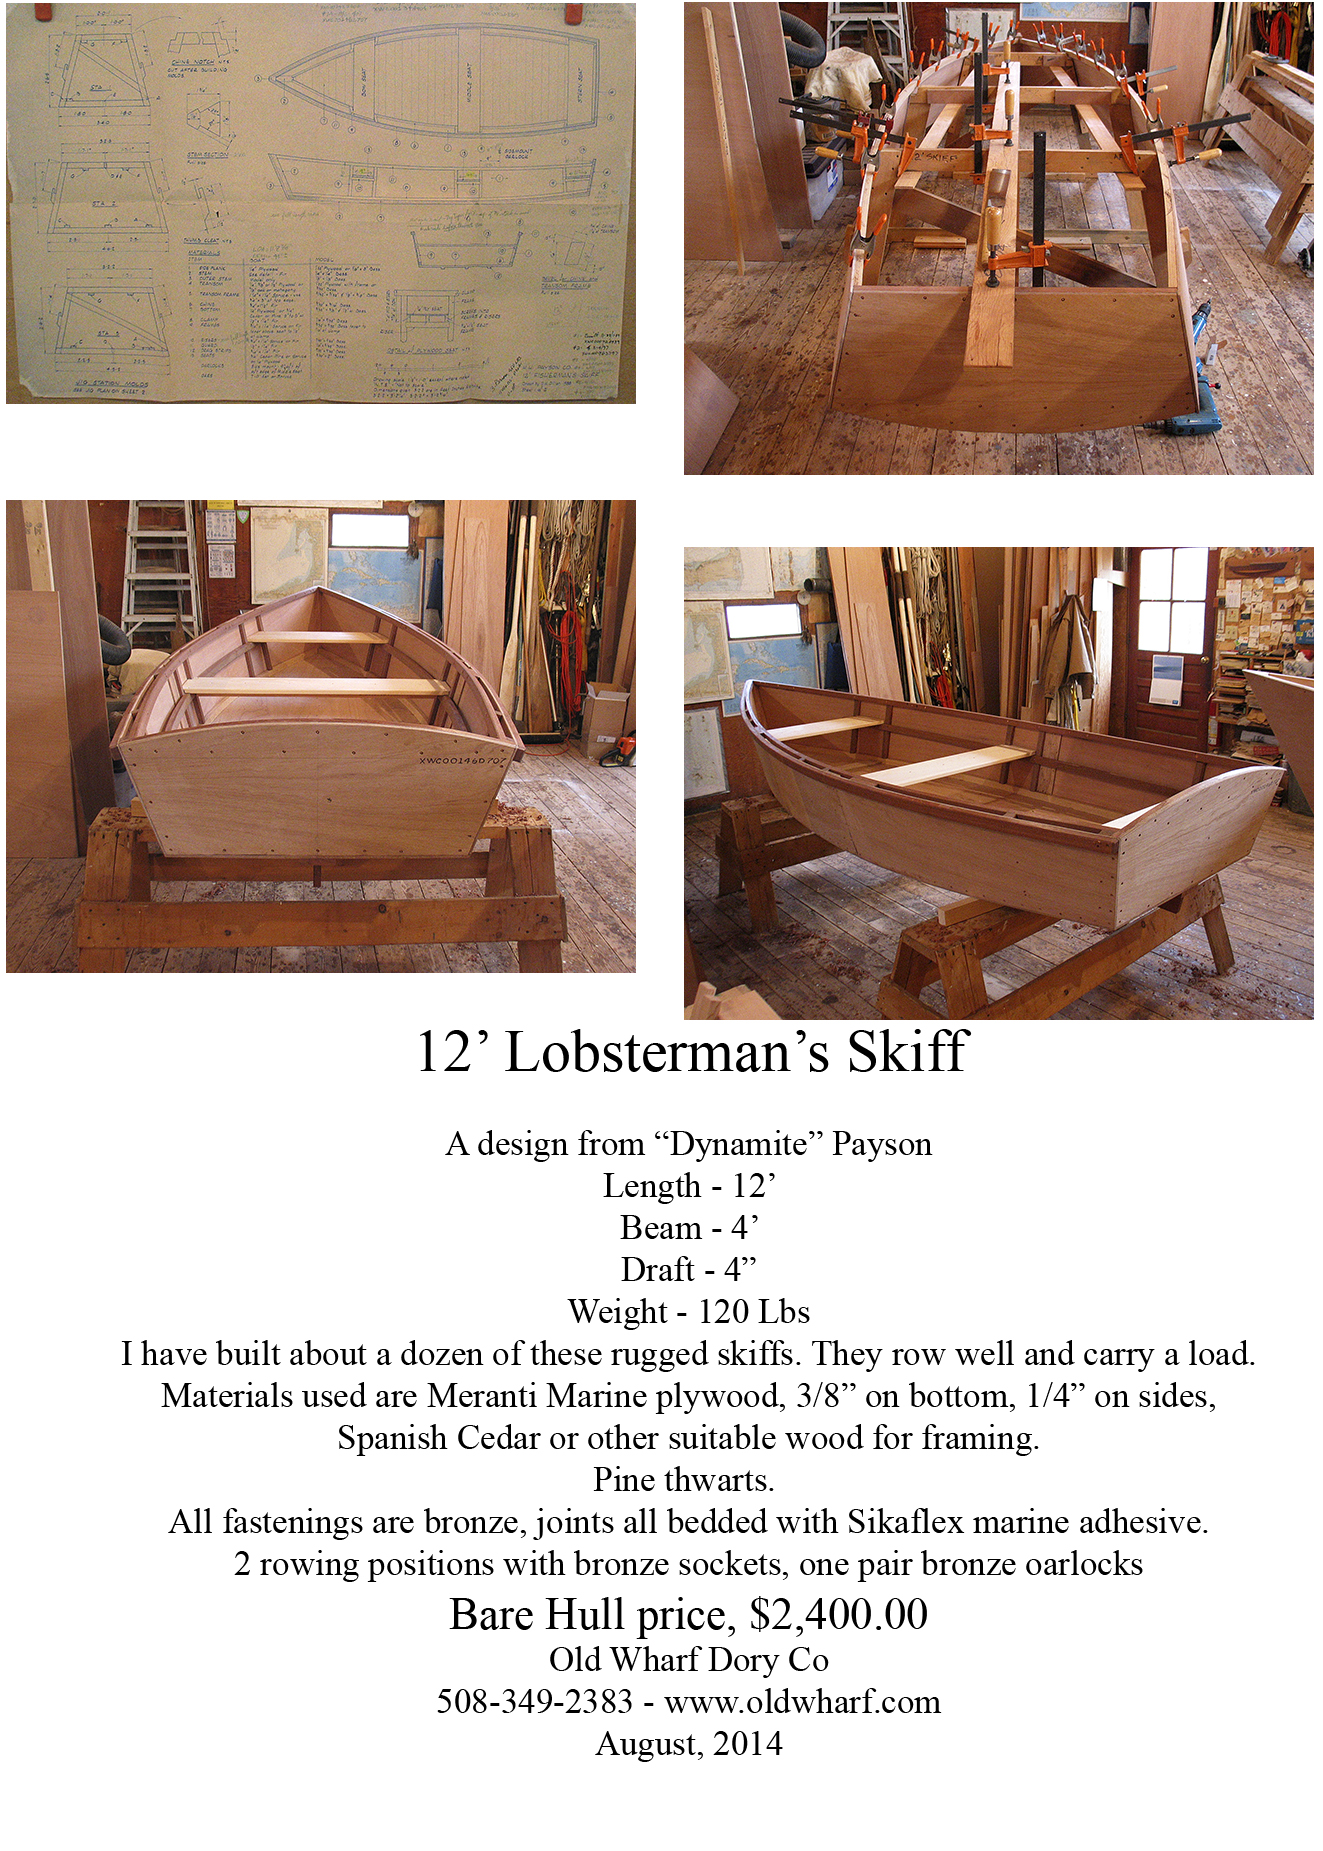 Some Info on the 12' Lobsterman's skiff.